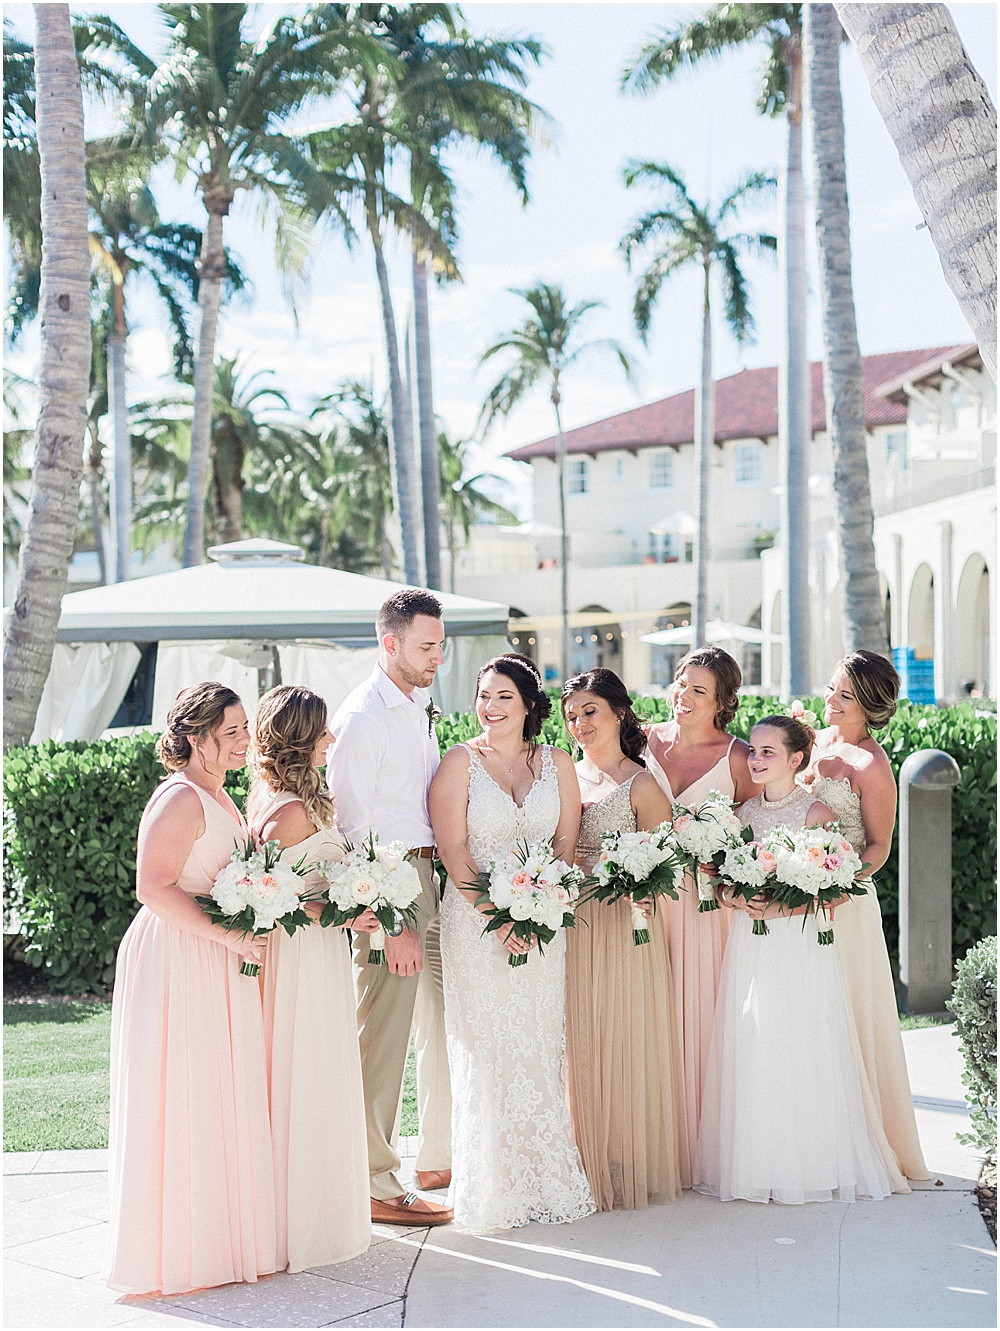 casa_marina_key_west_florida_destination_palm_trees_boston_wedding_photographer_meredith_jane_photography_photo_0089.jpg